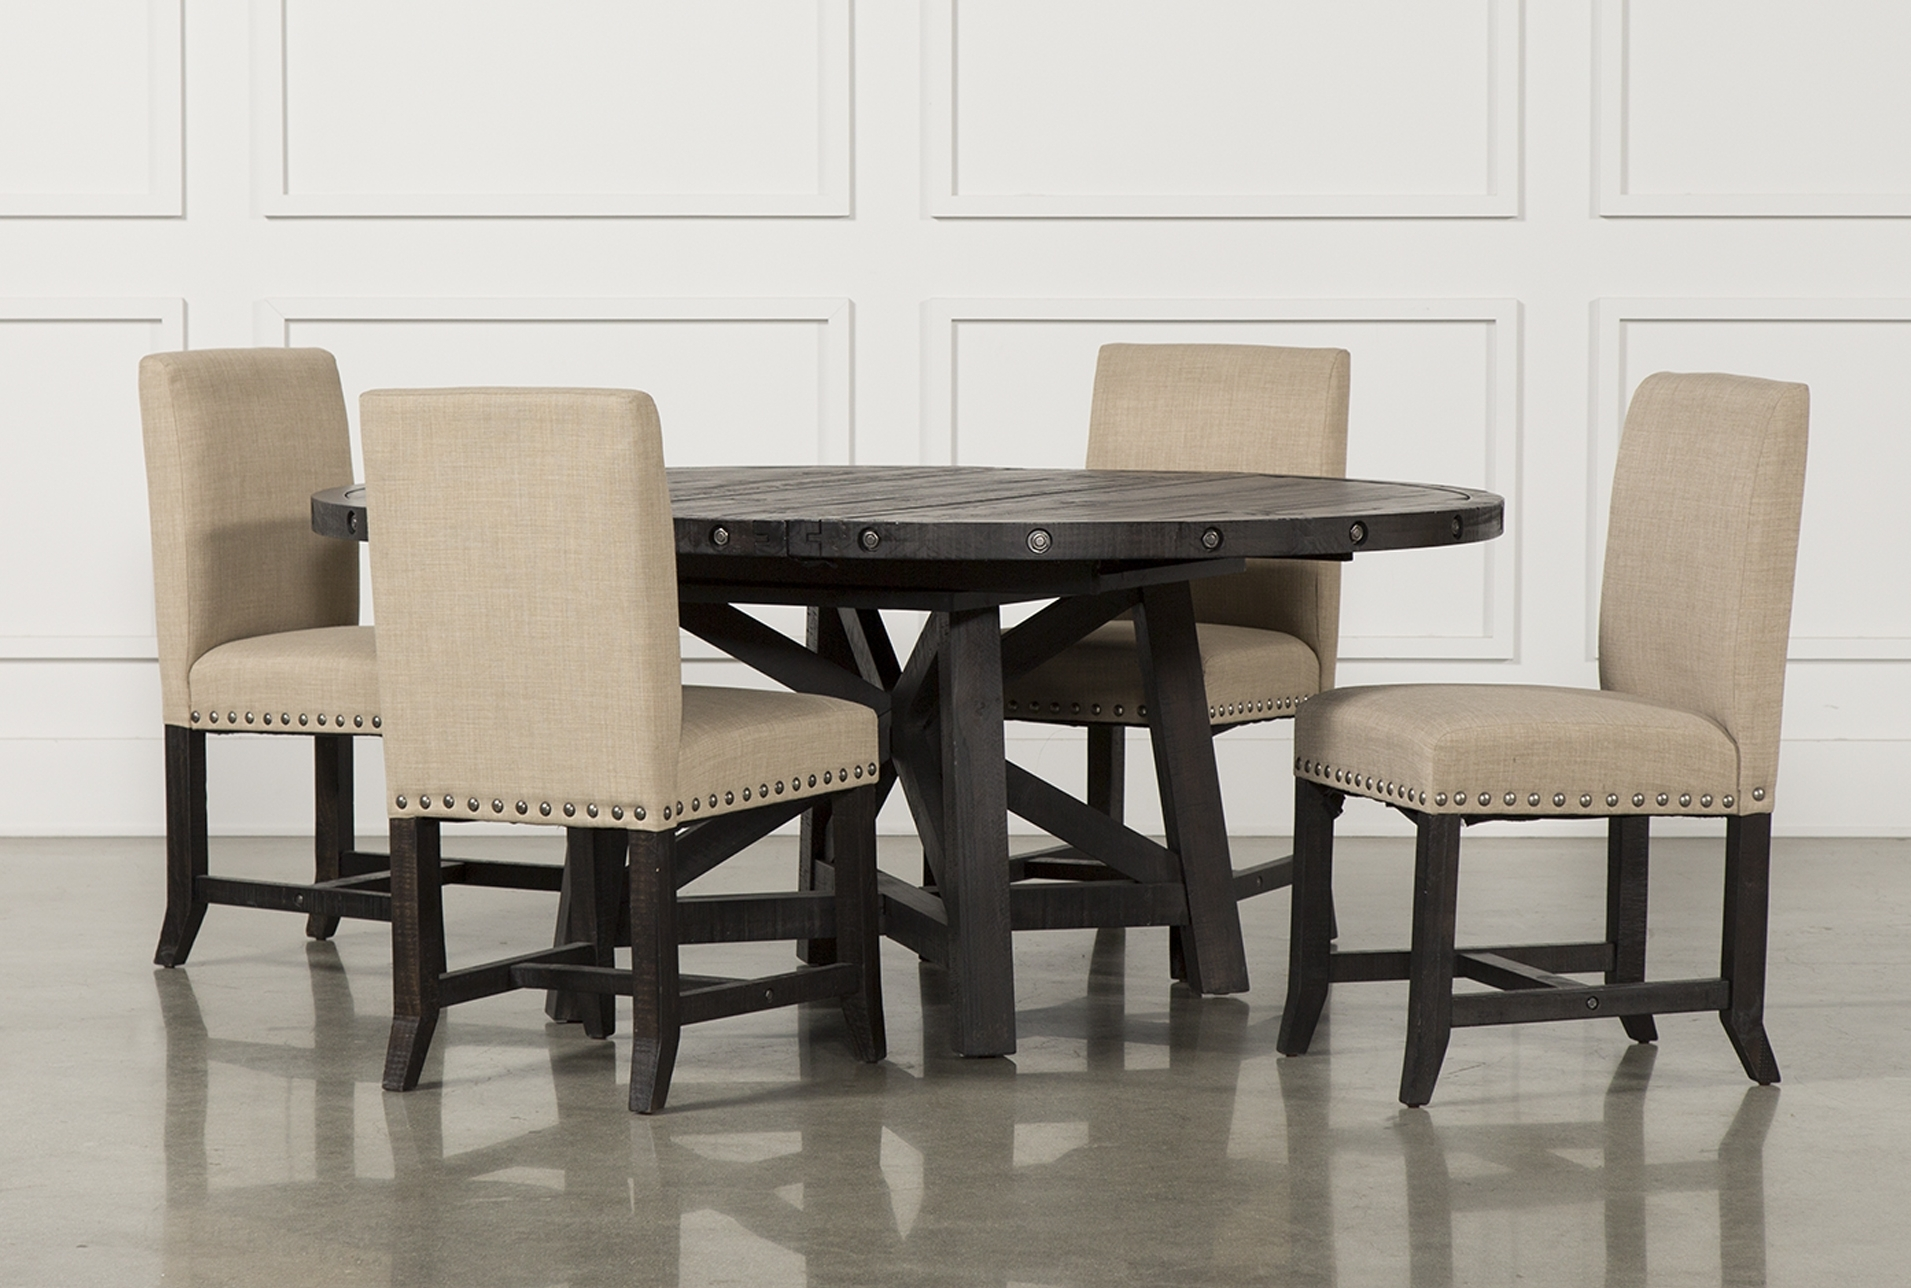 5. Jaxon 5 Piece Round Dining Set W Upholstered Chairs Qty 1 Has intended for Famous Jaxon Grey 6 Piece Rectangle Extension Dining Sets With Bench & Wood Chairs